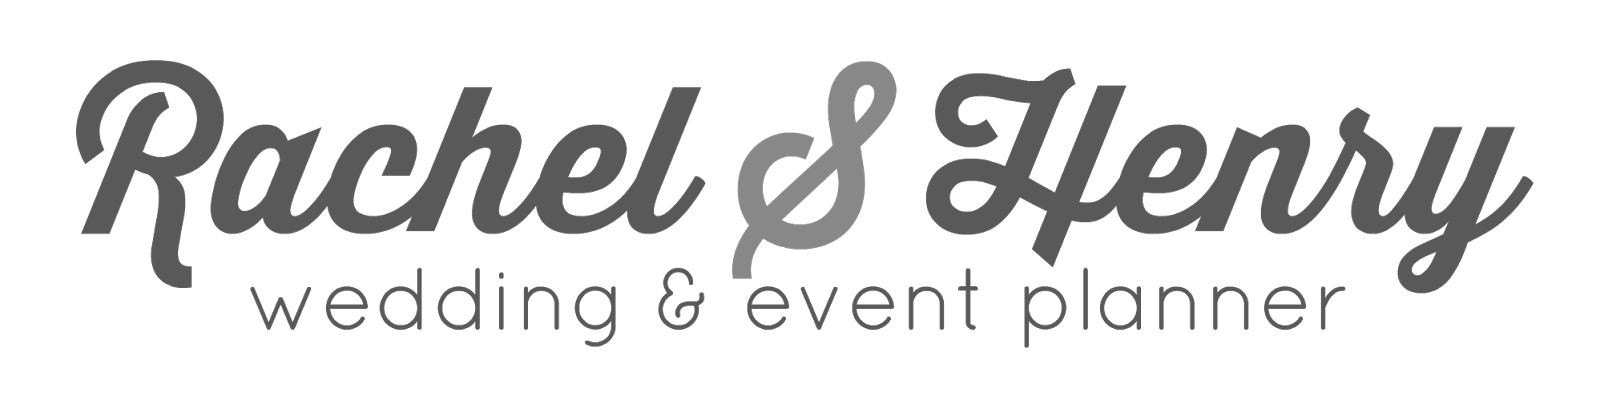 Weddings, Events, & Planning: